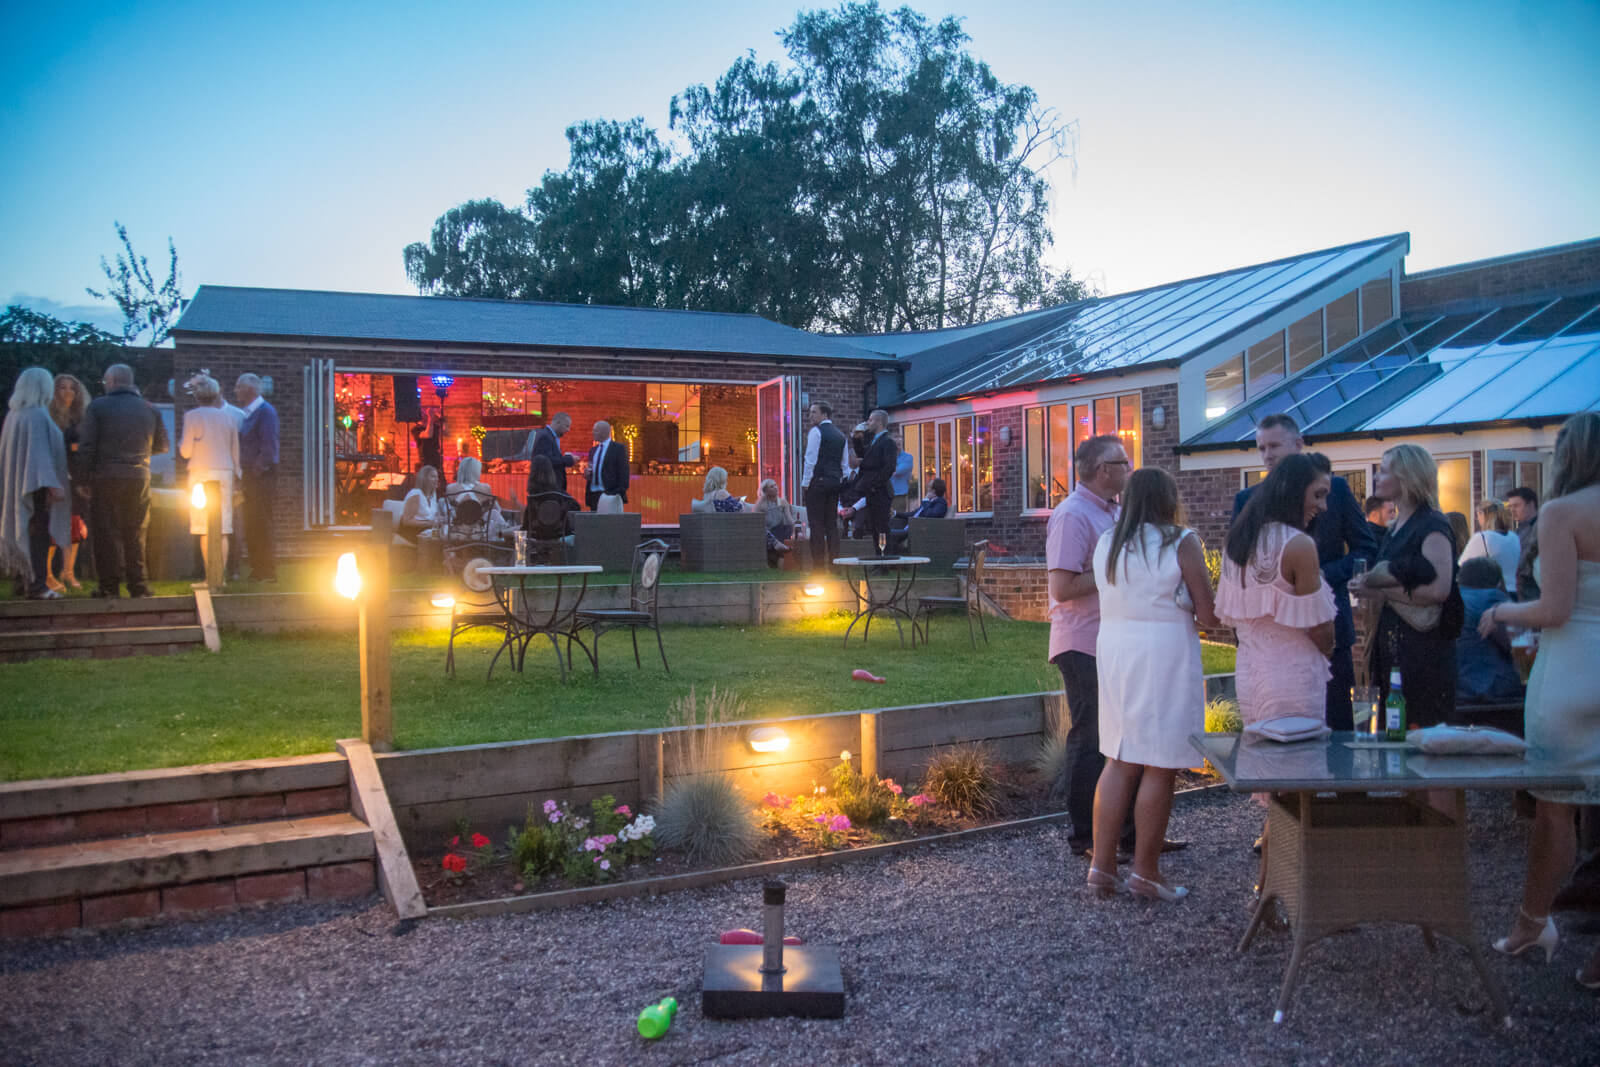 Guests socialising in the garden outside the wedding reception venue in the evening light